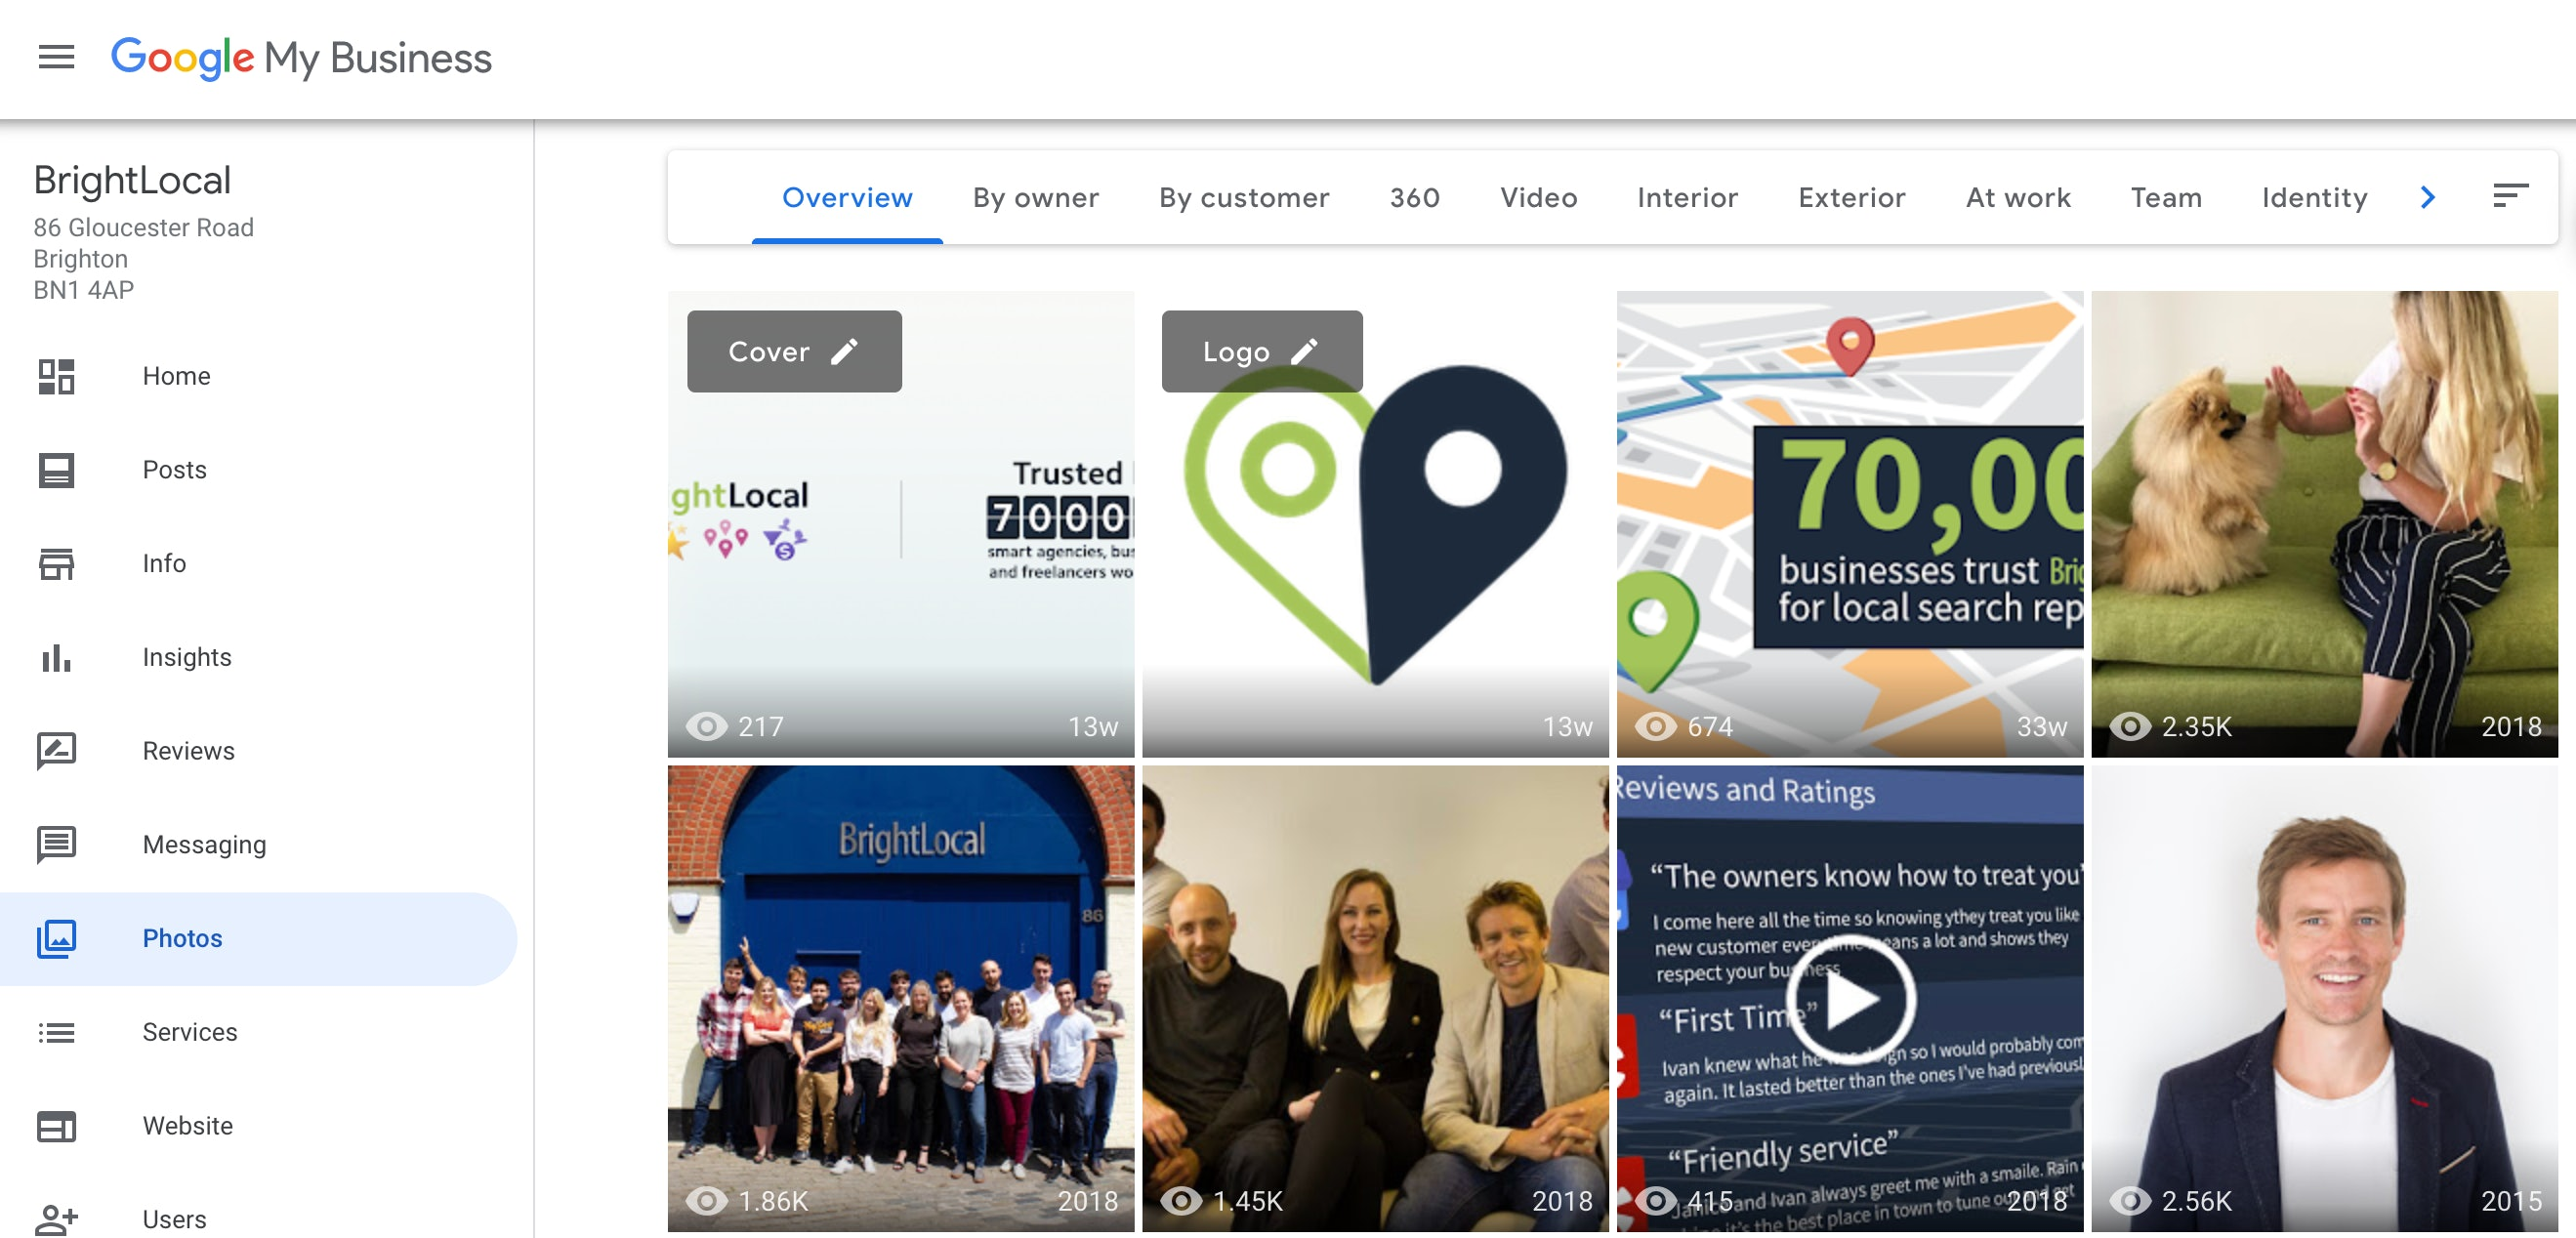 Google My Business photo samples